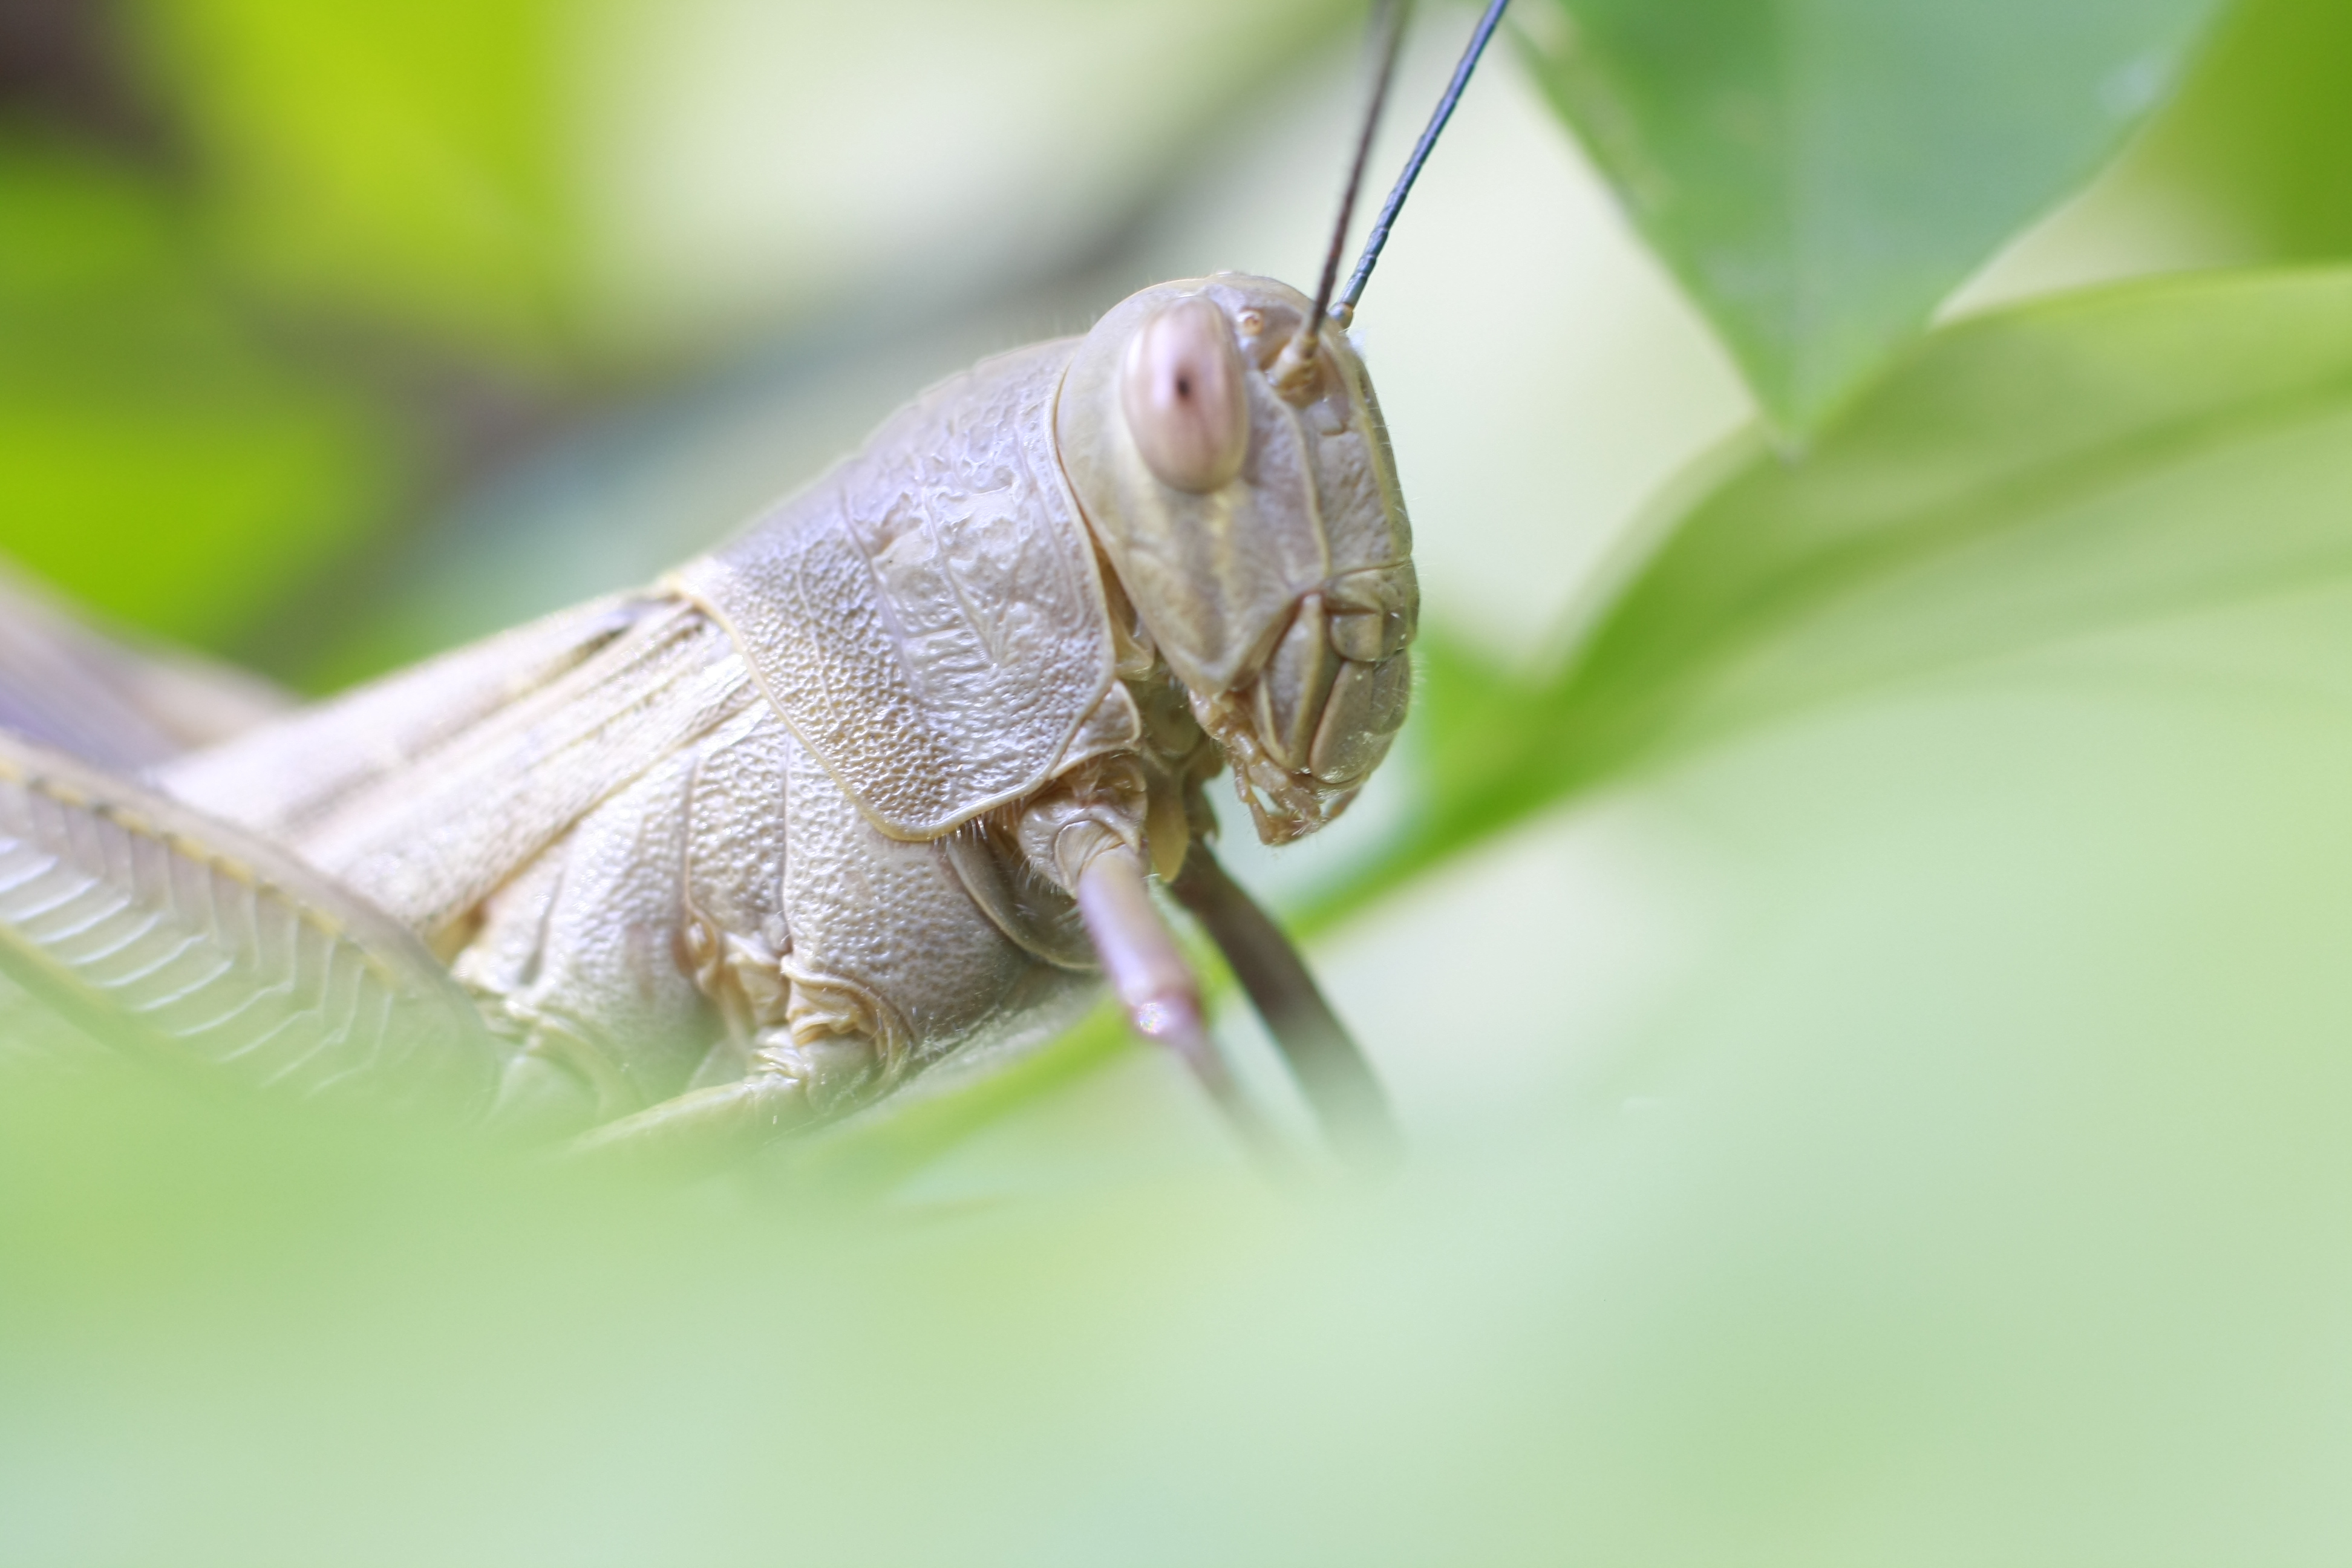 How to Tell a Cricket From a Grasshopper